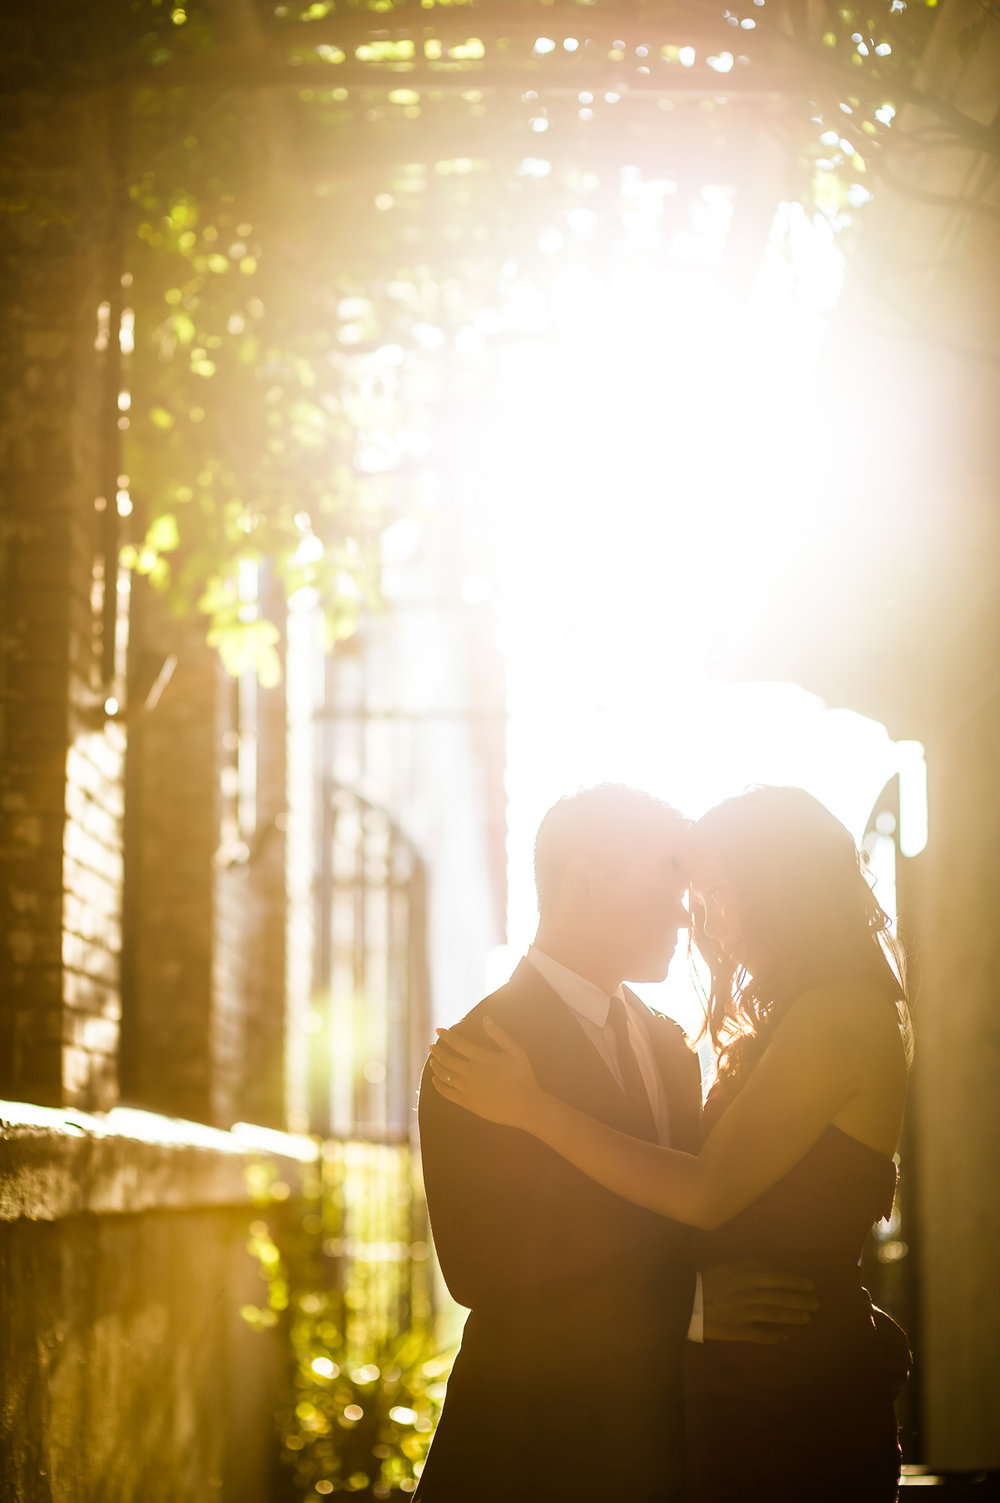 57-David Loi Studios - Cotton Mill - Mckinney Texas - Engagement Session-14224.jpg